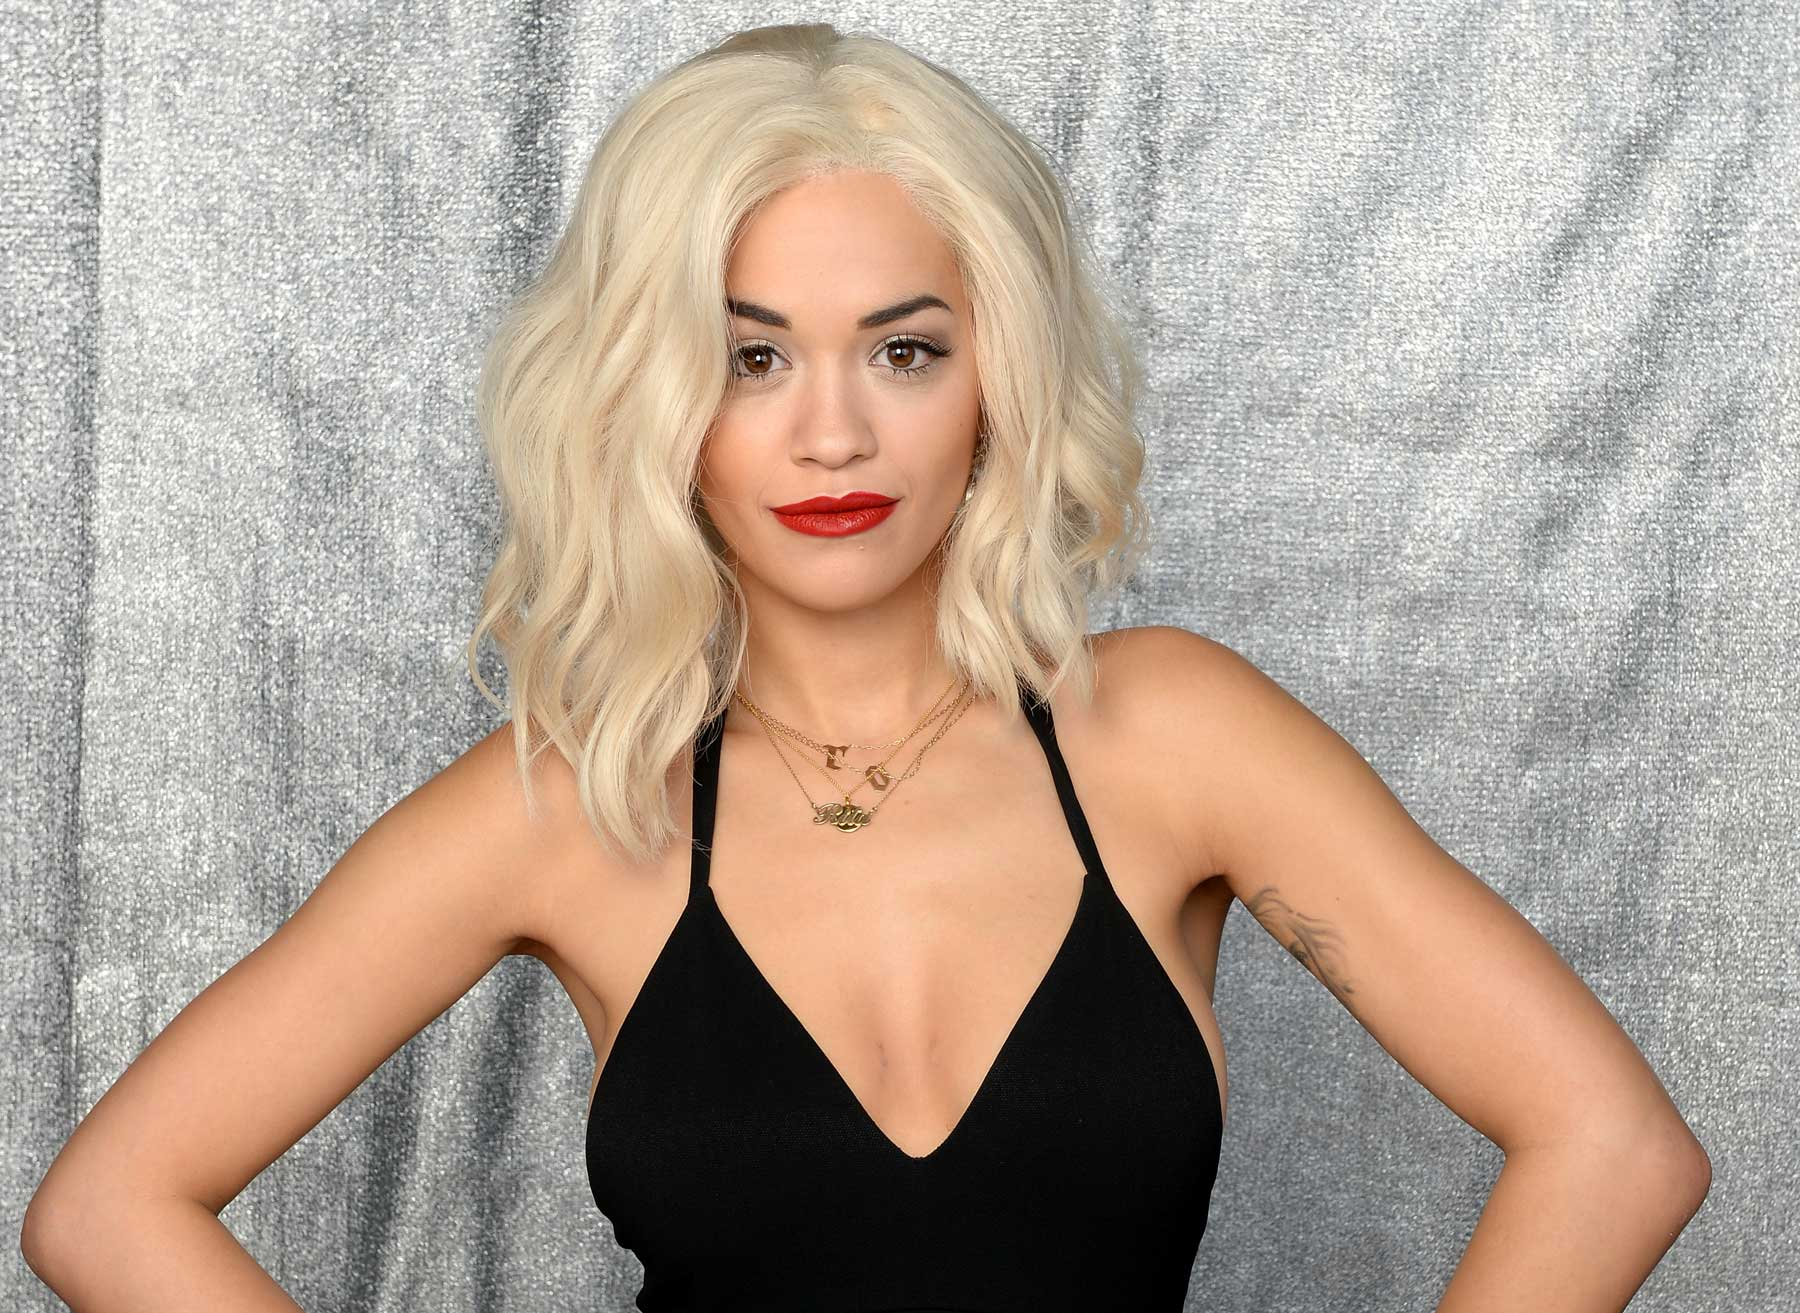 Rita Ora Joins 'Fifty Shades of Grey' Cast